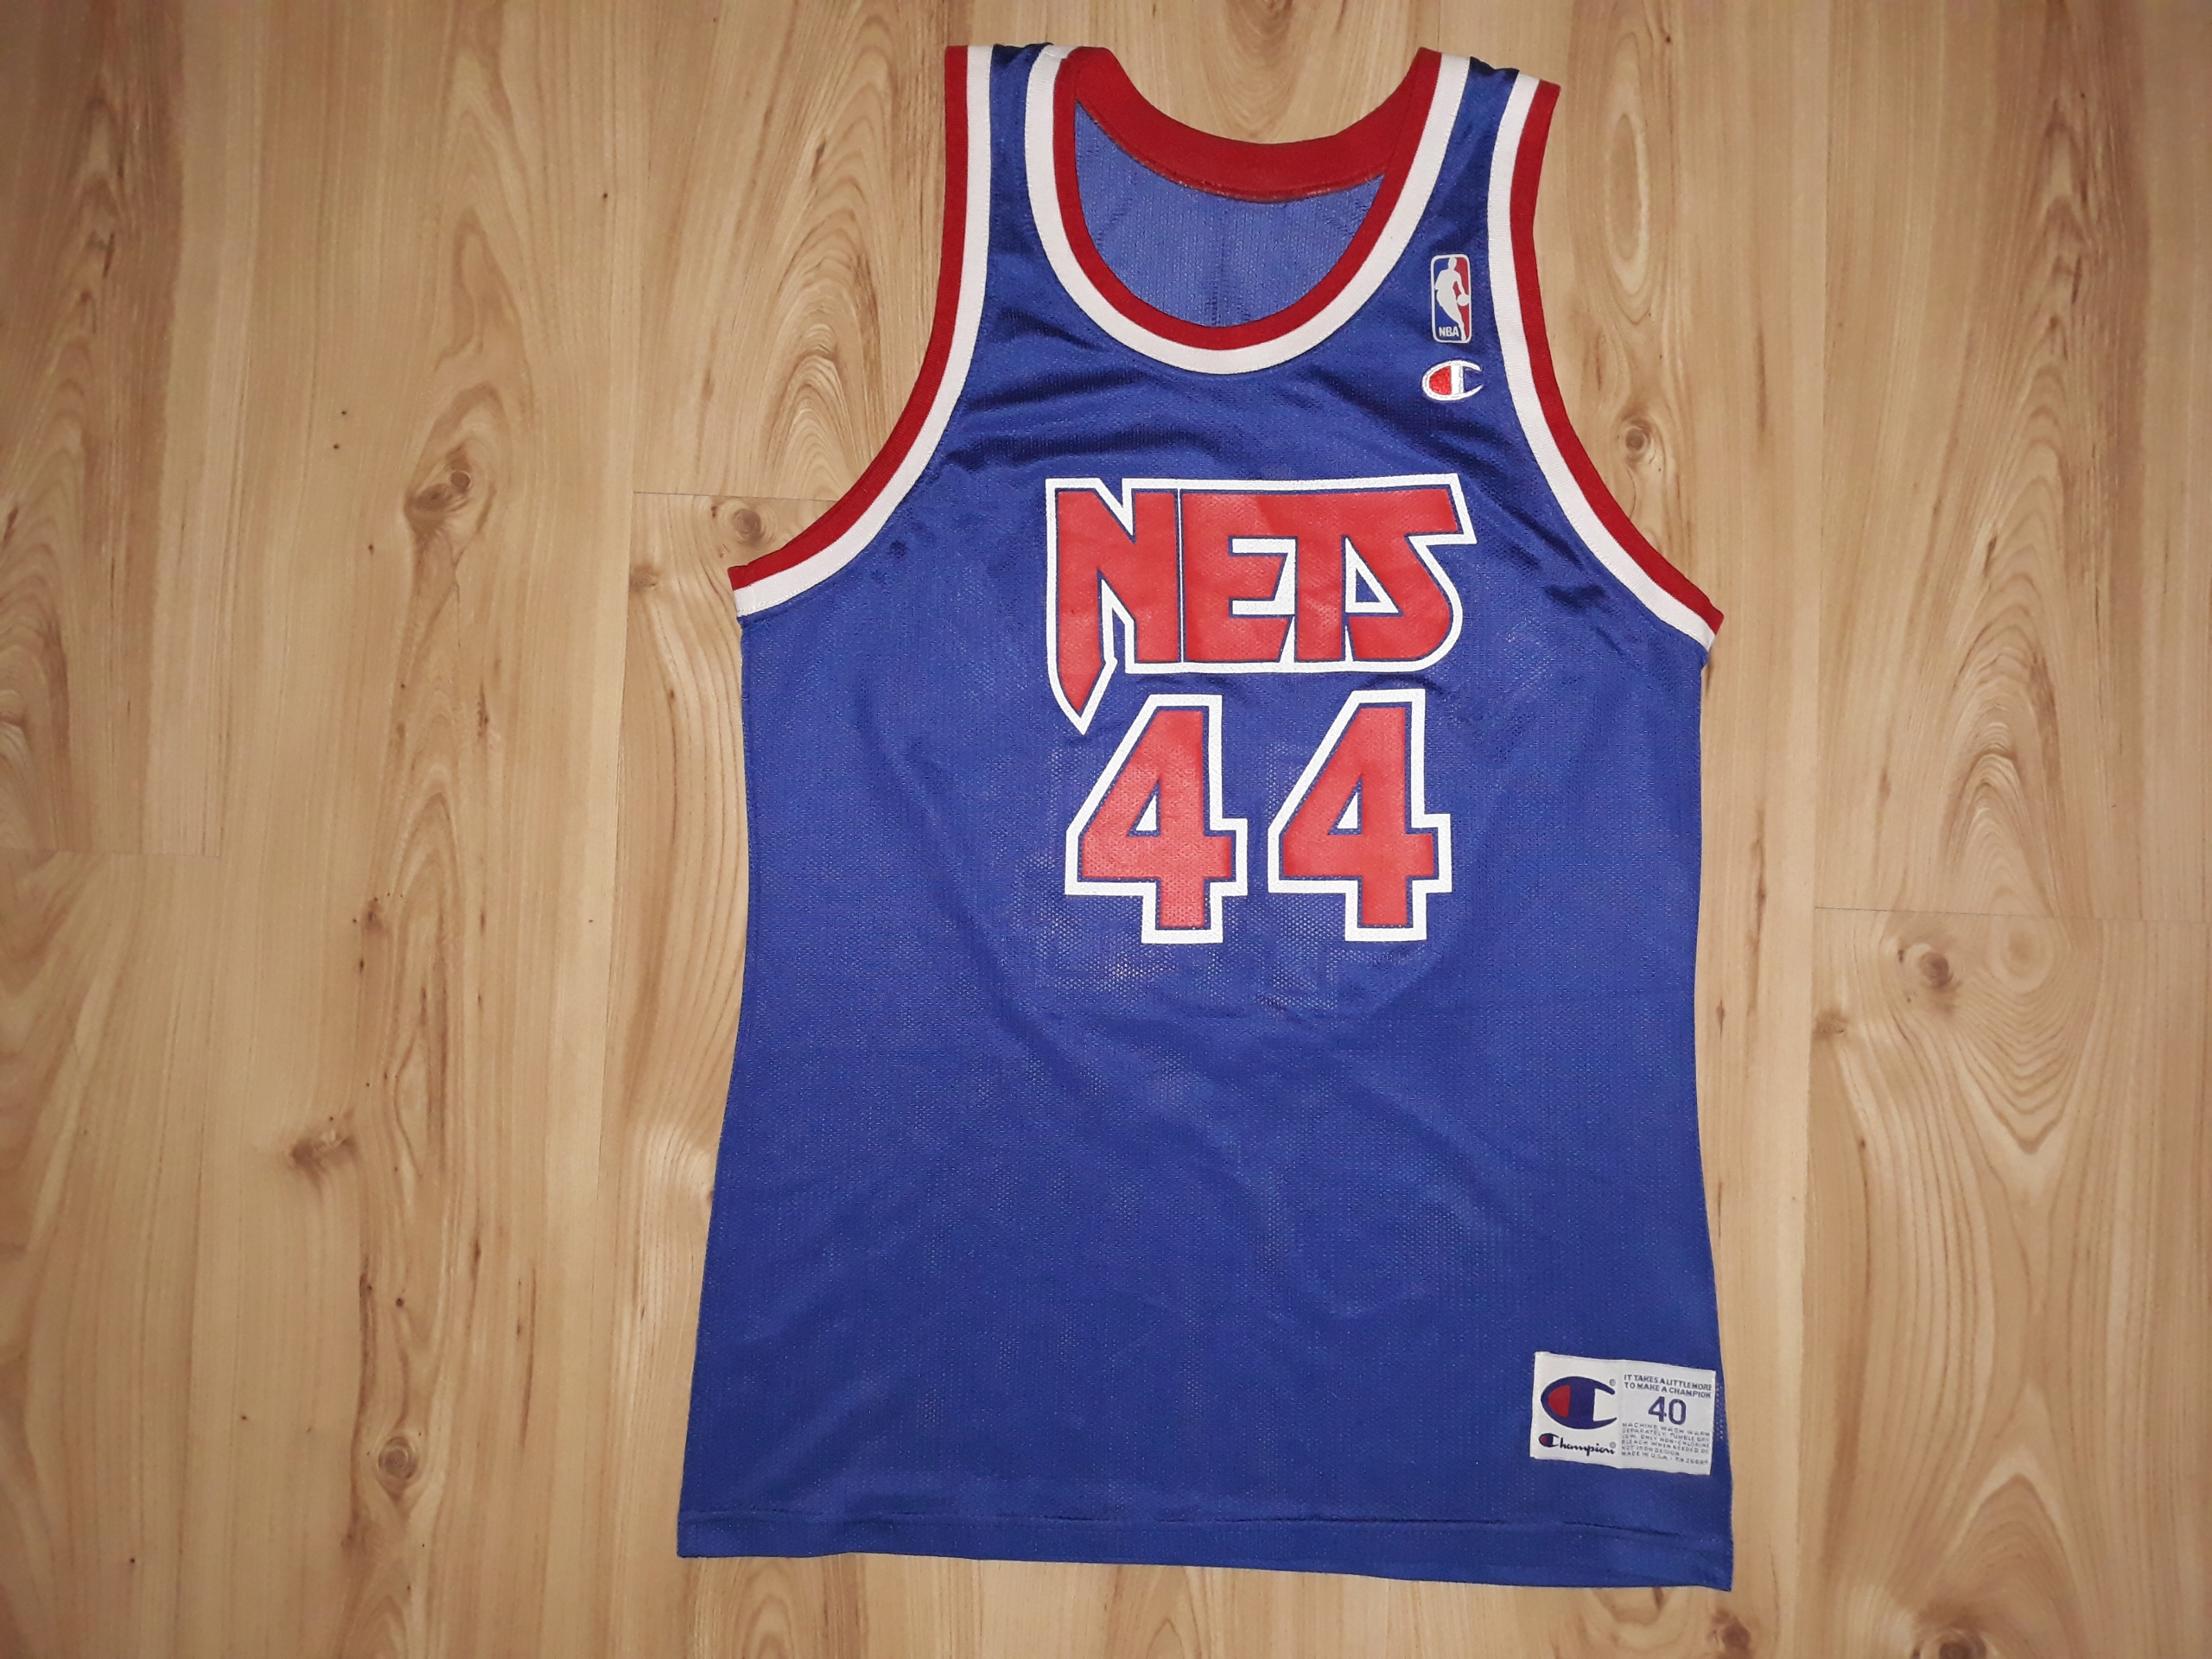 Koszulka L Champion New Jersey Nets Coleman 44 NBA